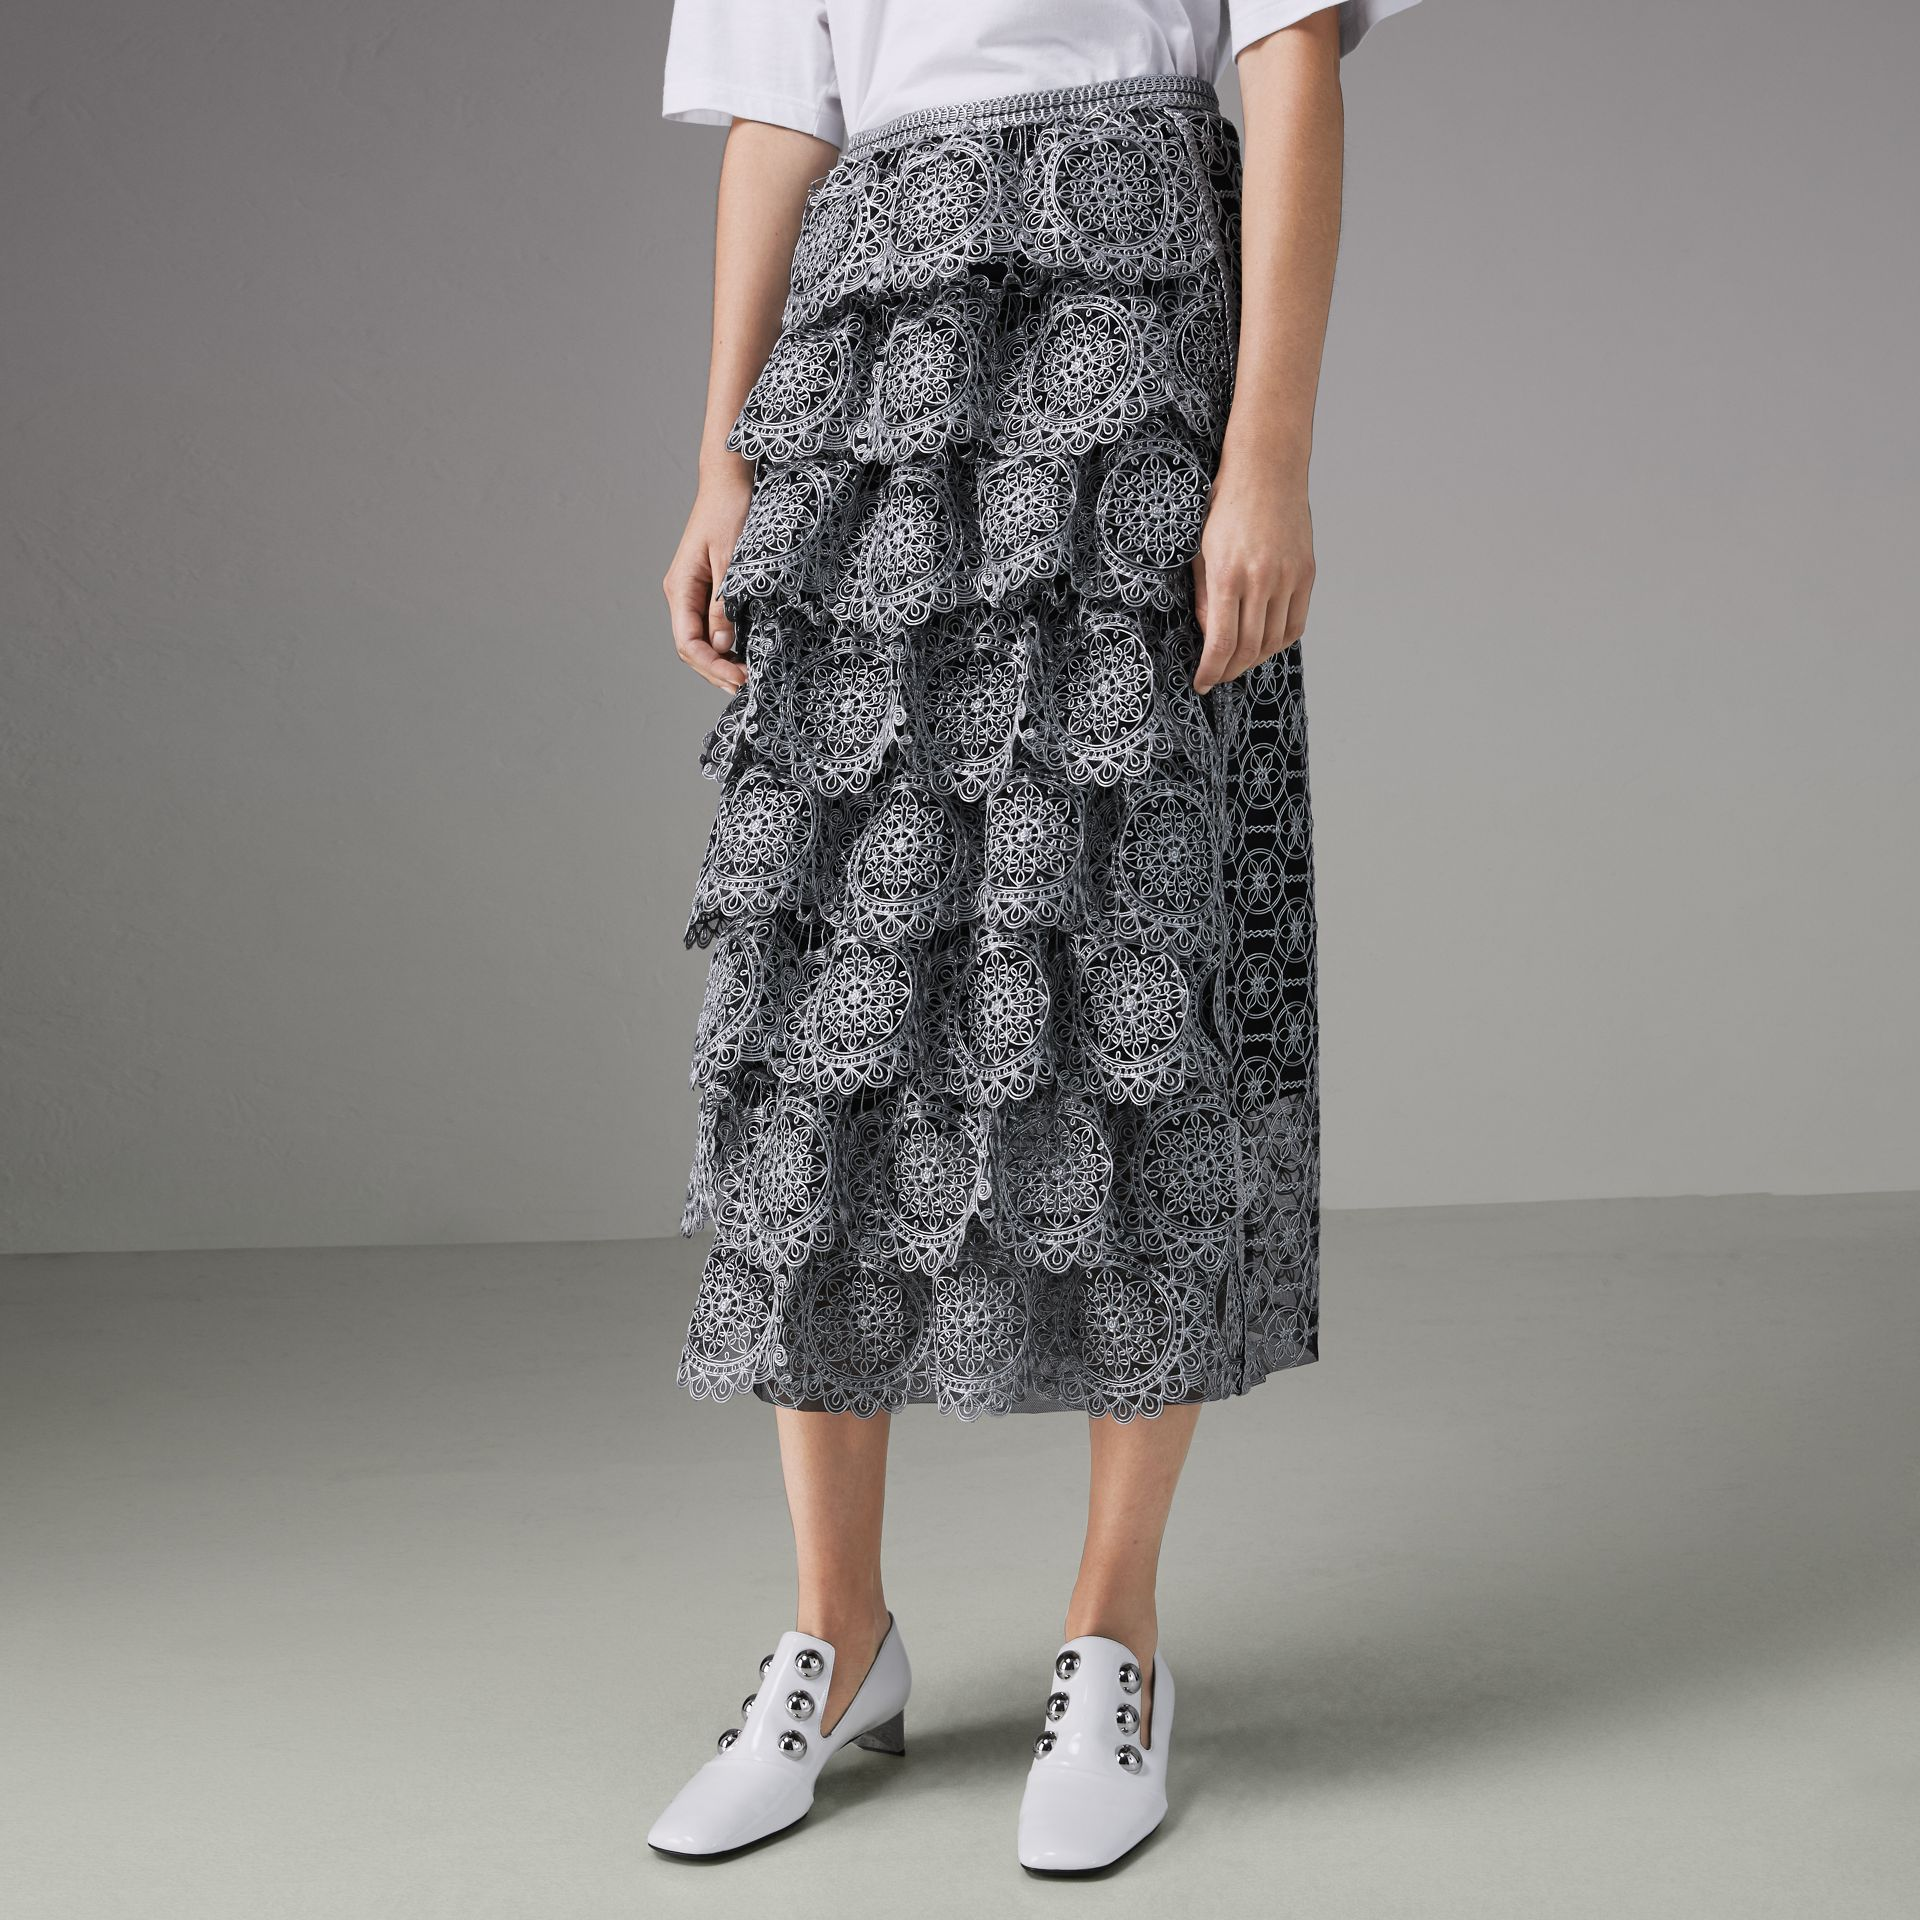 Tiered Silicone Lace Skirt in Silver - Women | Burberry - gallery image 4